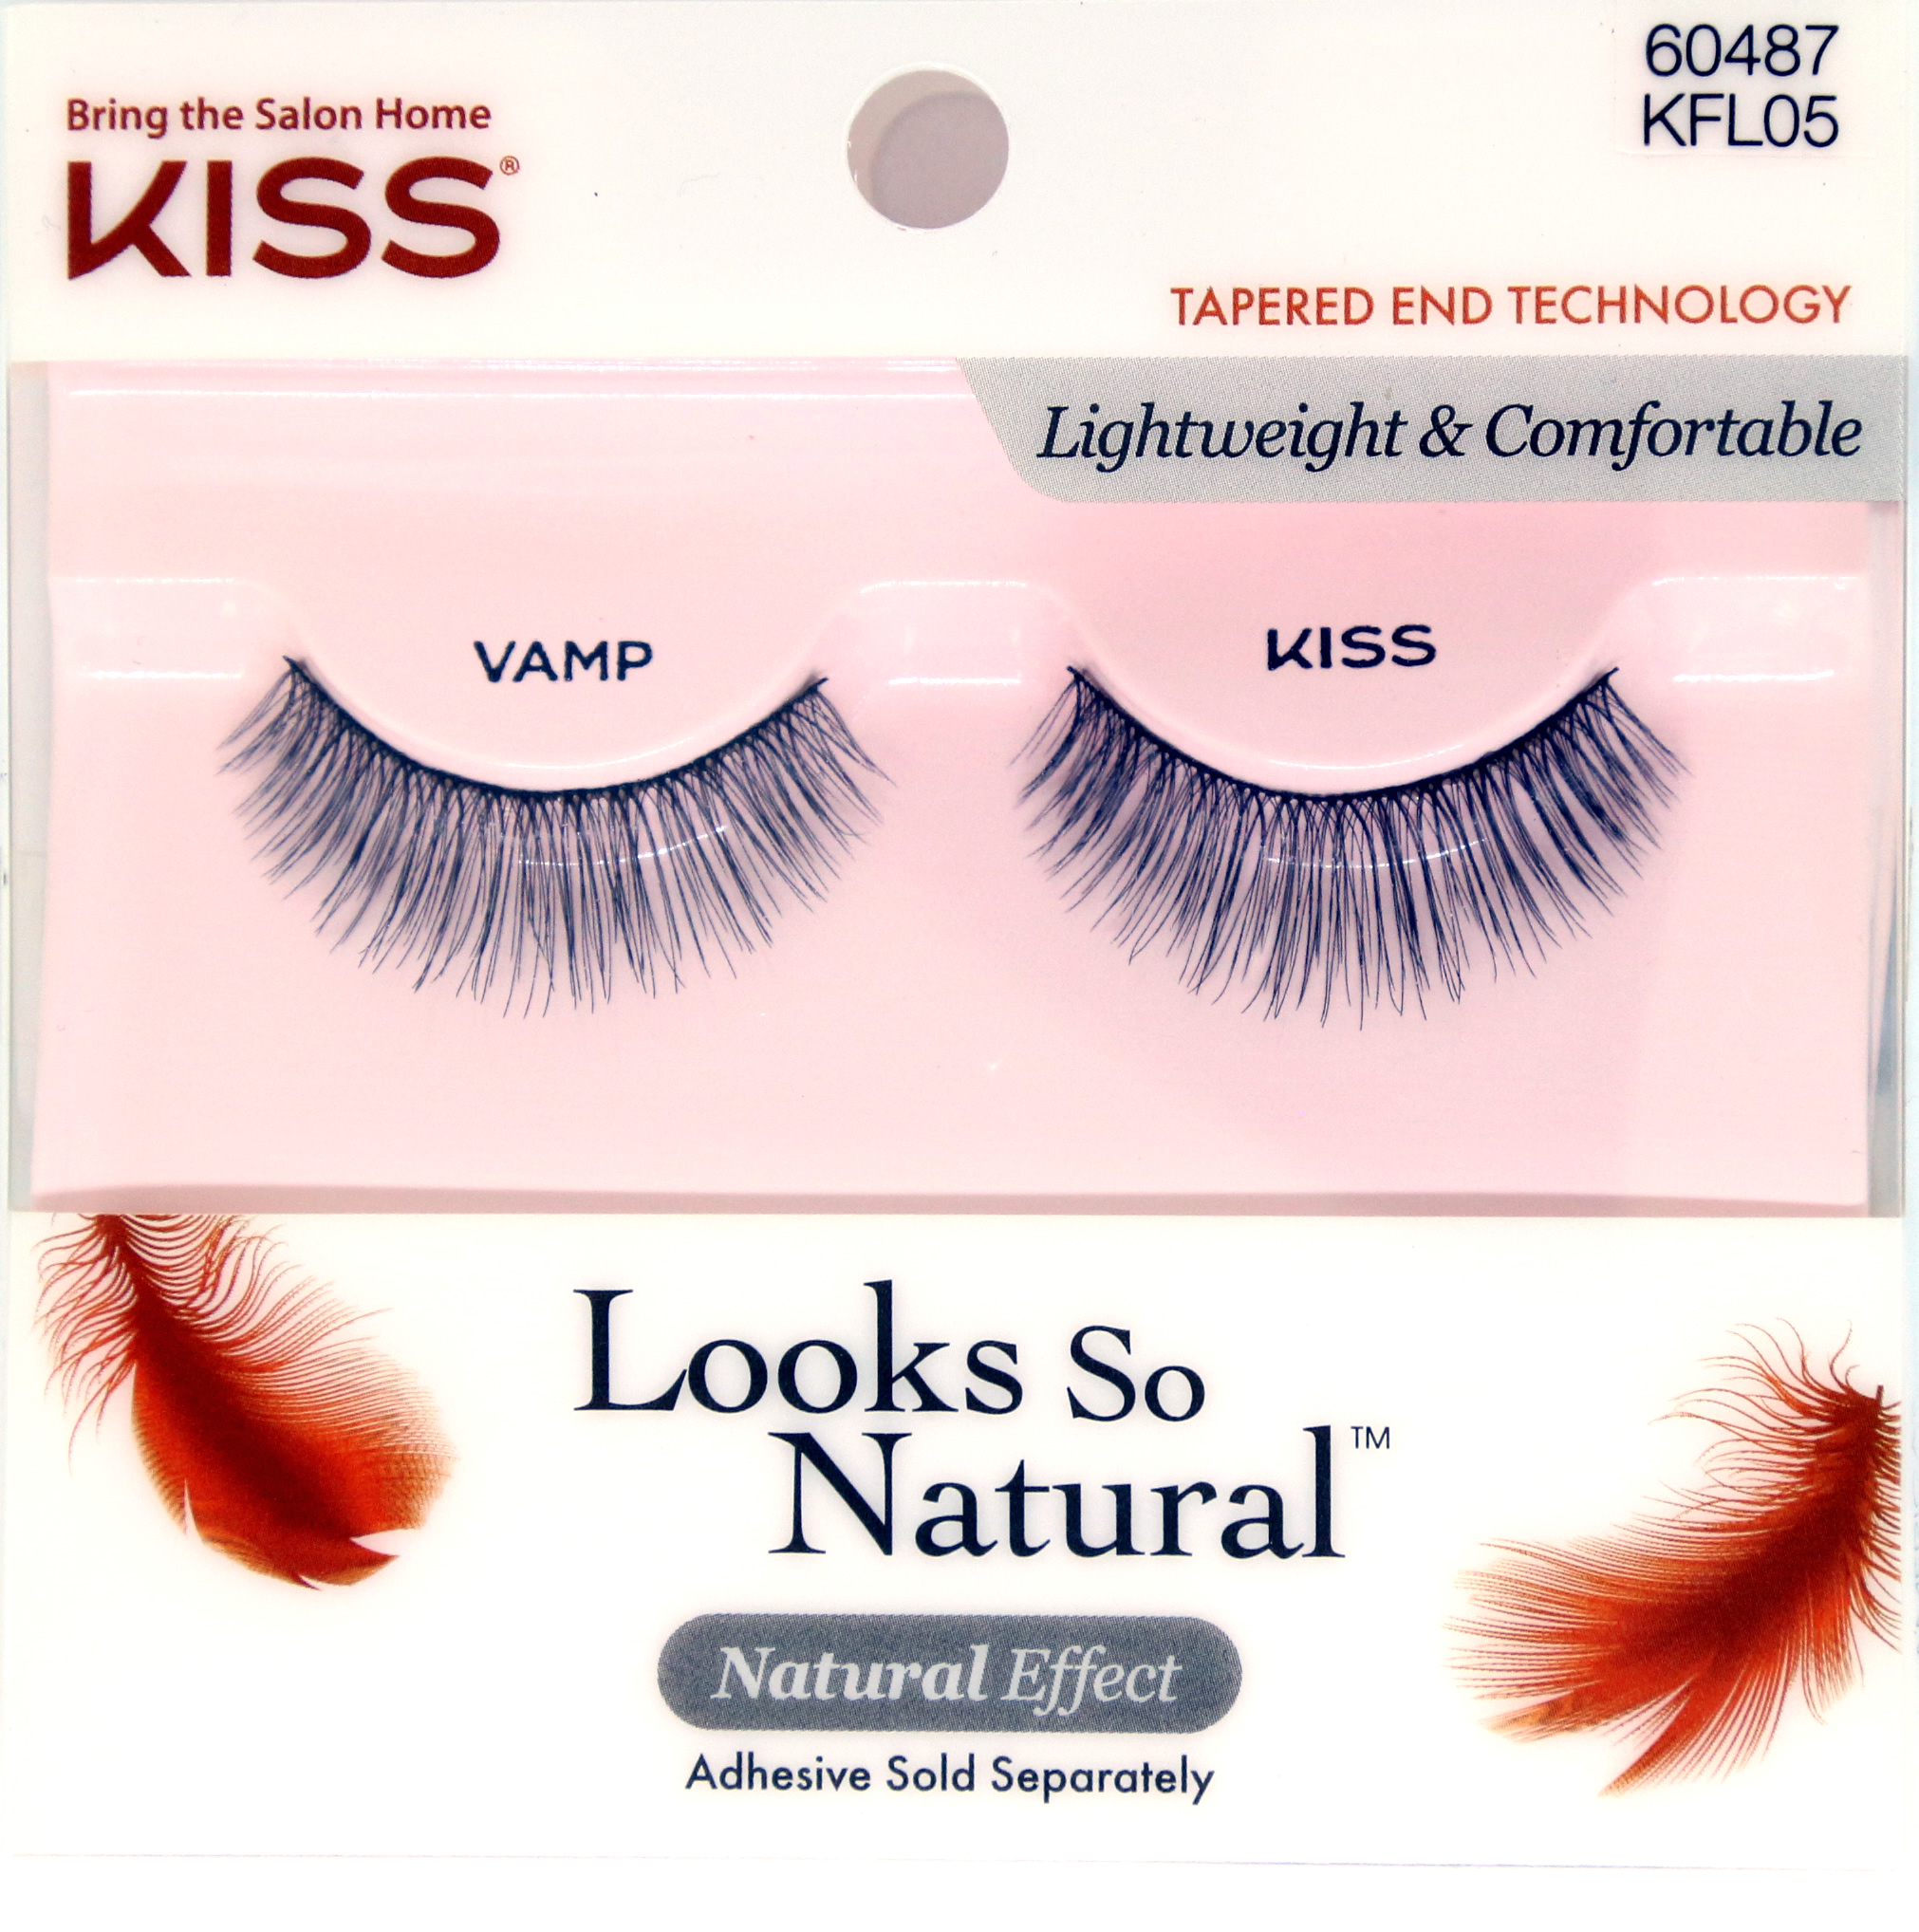 KISS Looks So Natural Lashes - Vamp (KFL05)